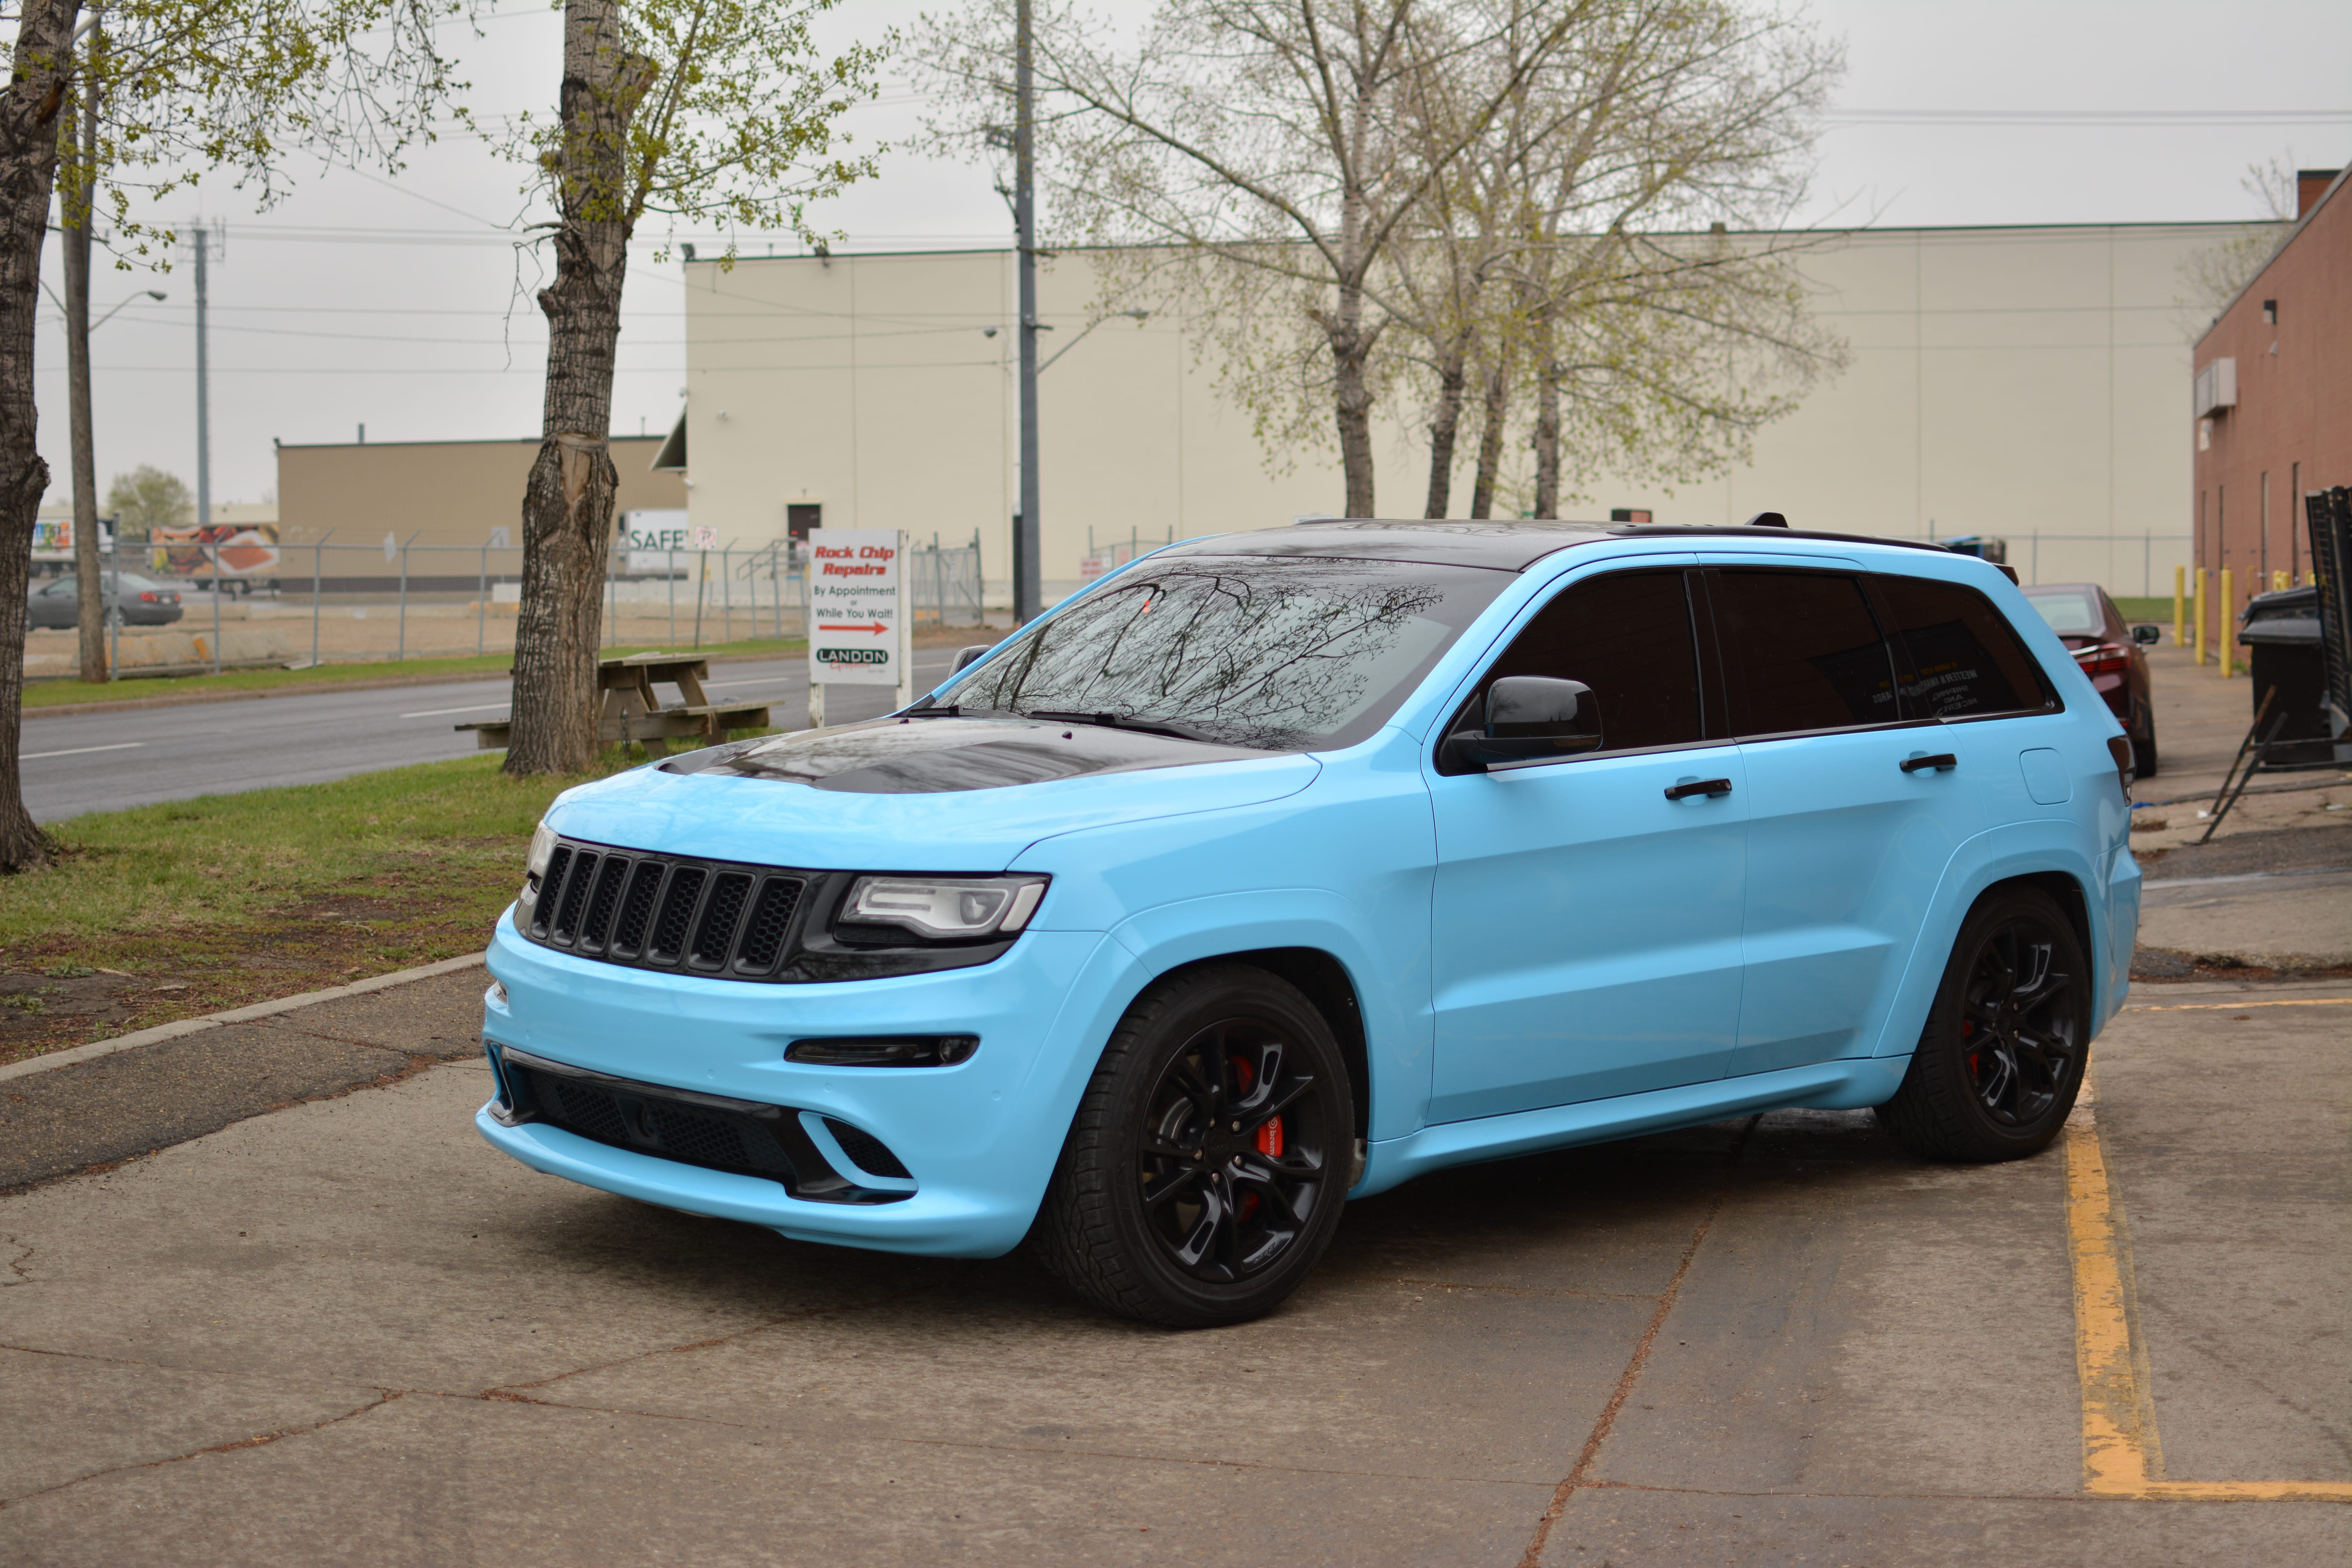 Jeep SRT8 wrapped in 3M Sky Blue.